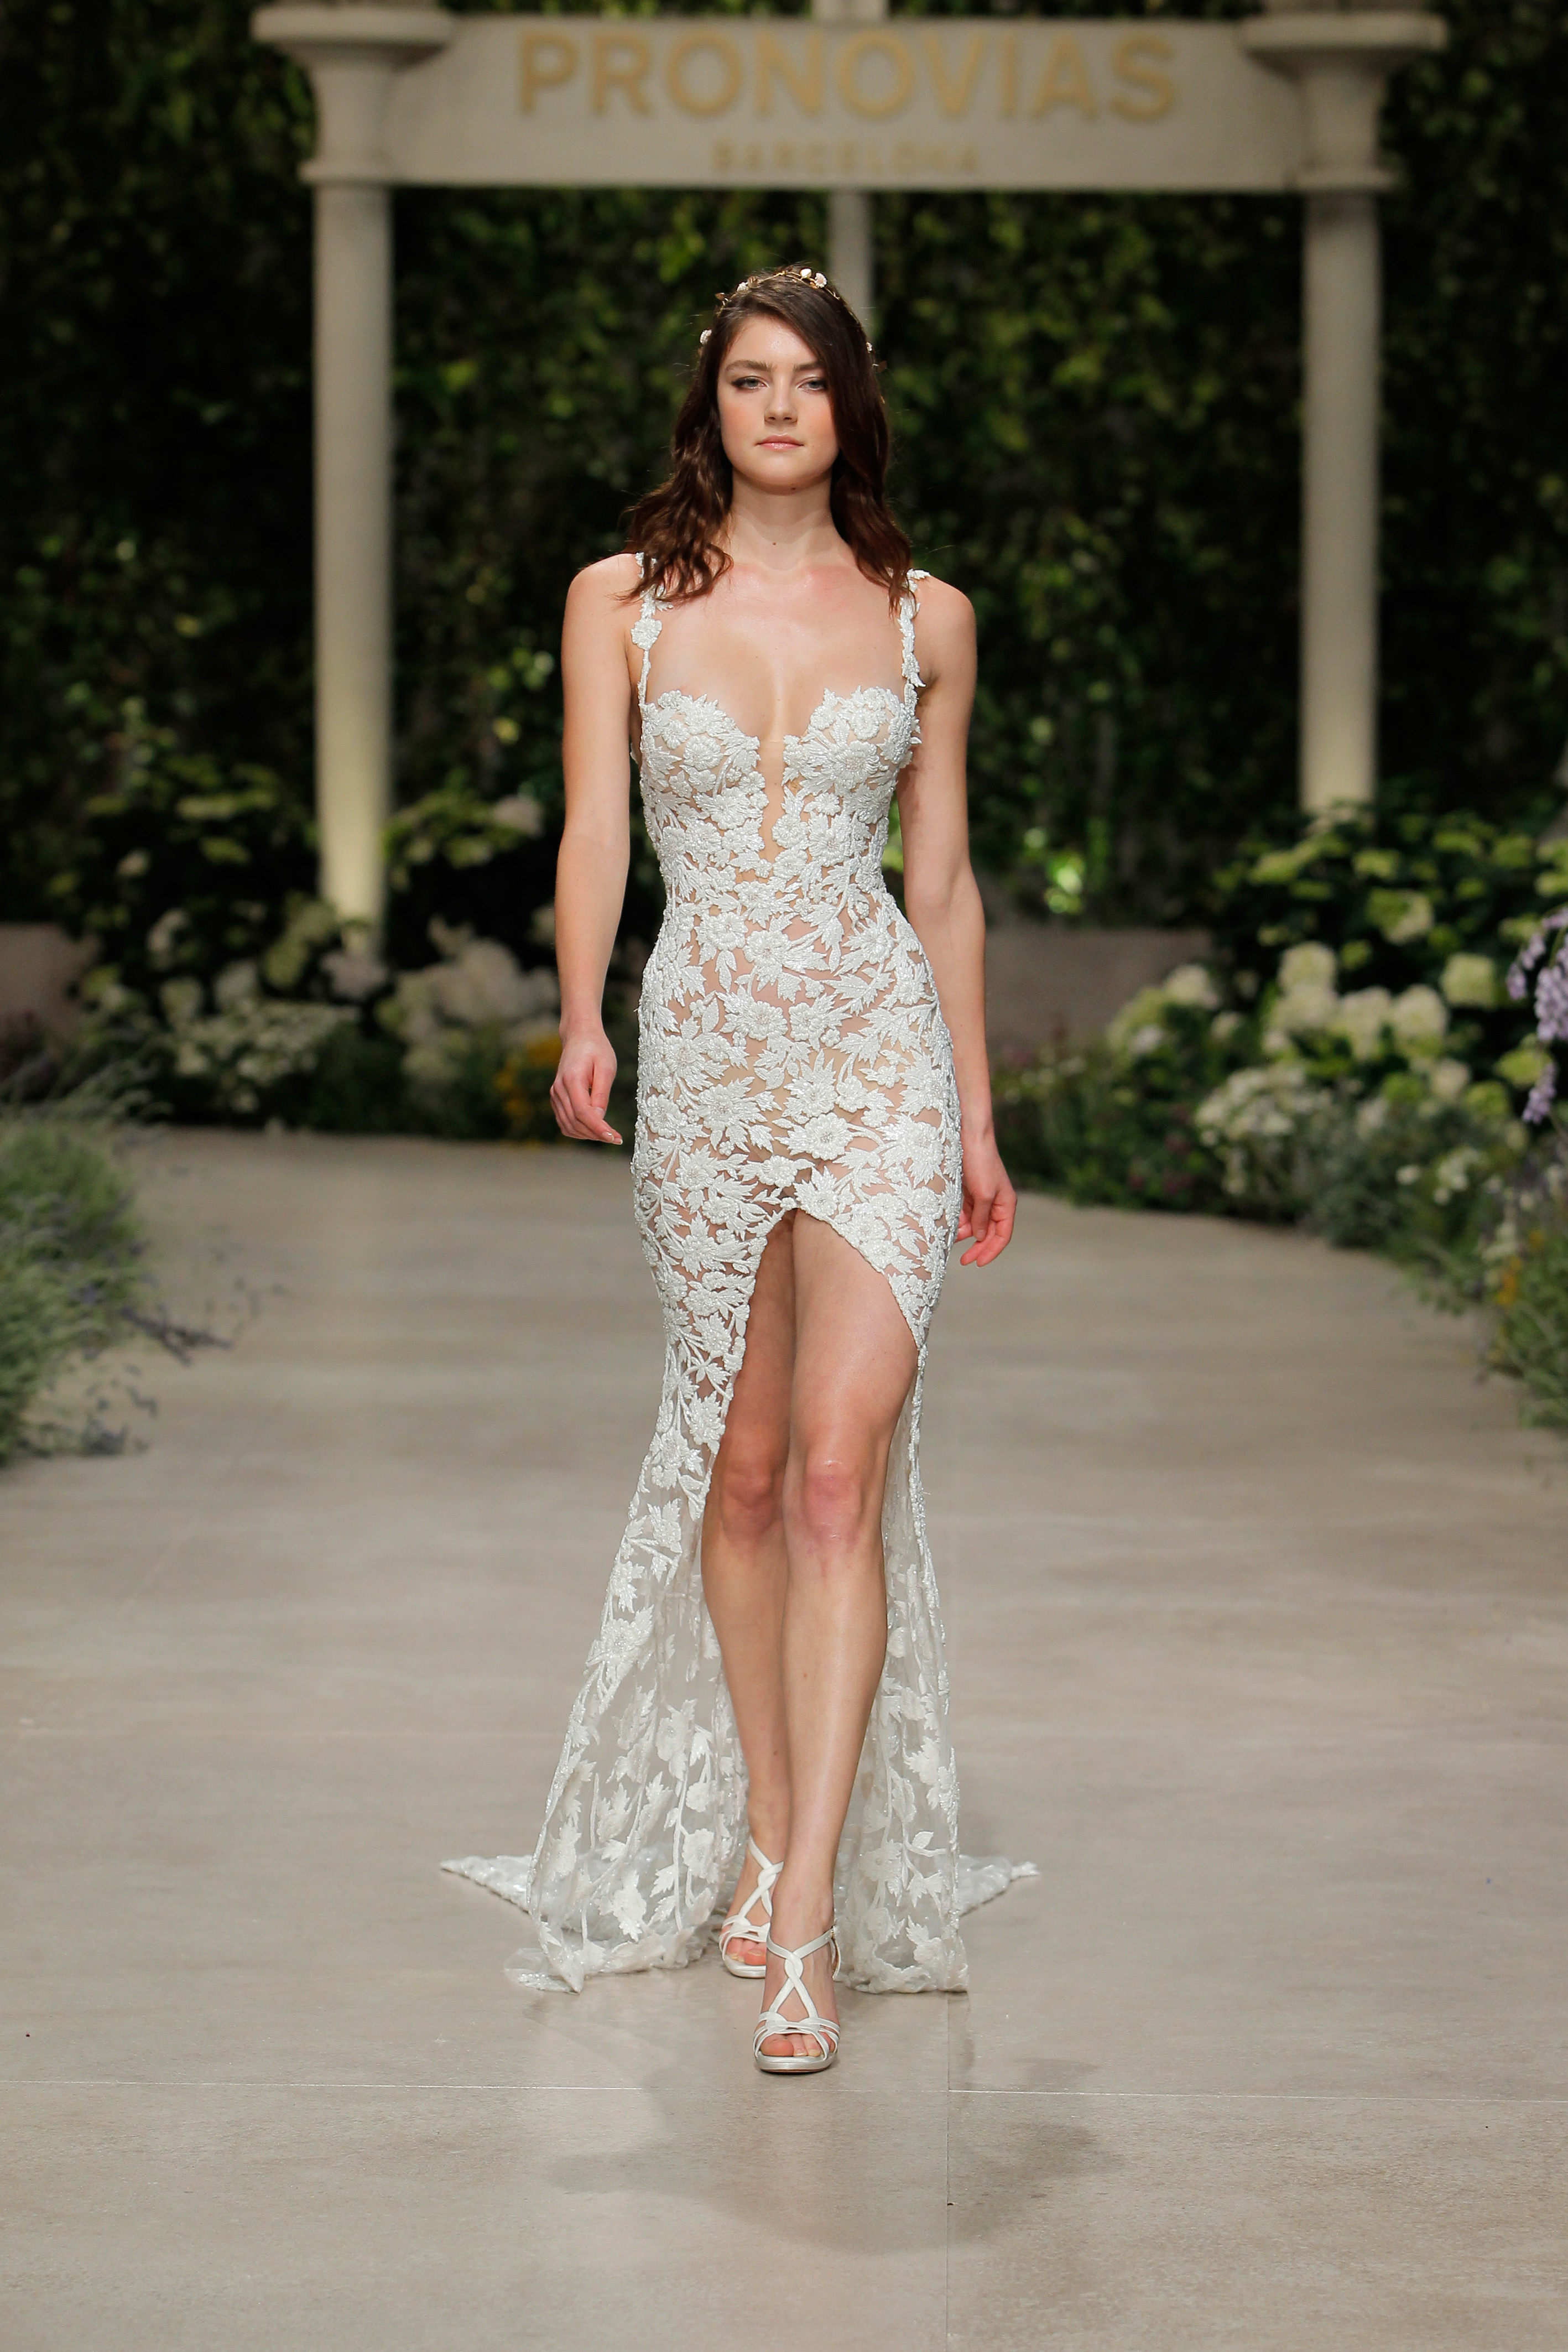 pronovias wedding dress spring 2019 lace sweetheart front slit